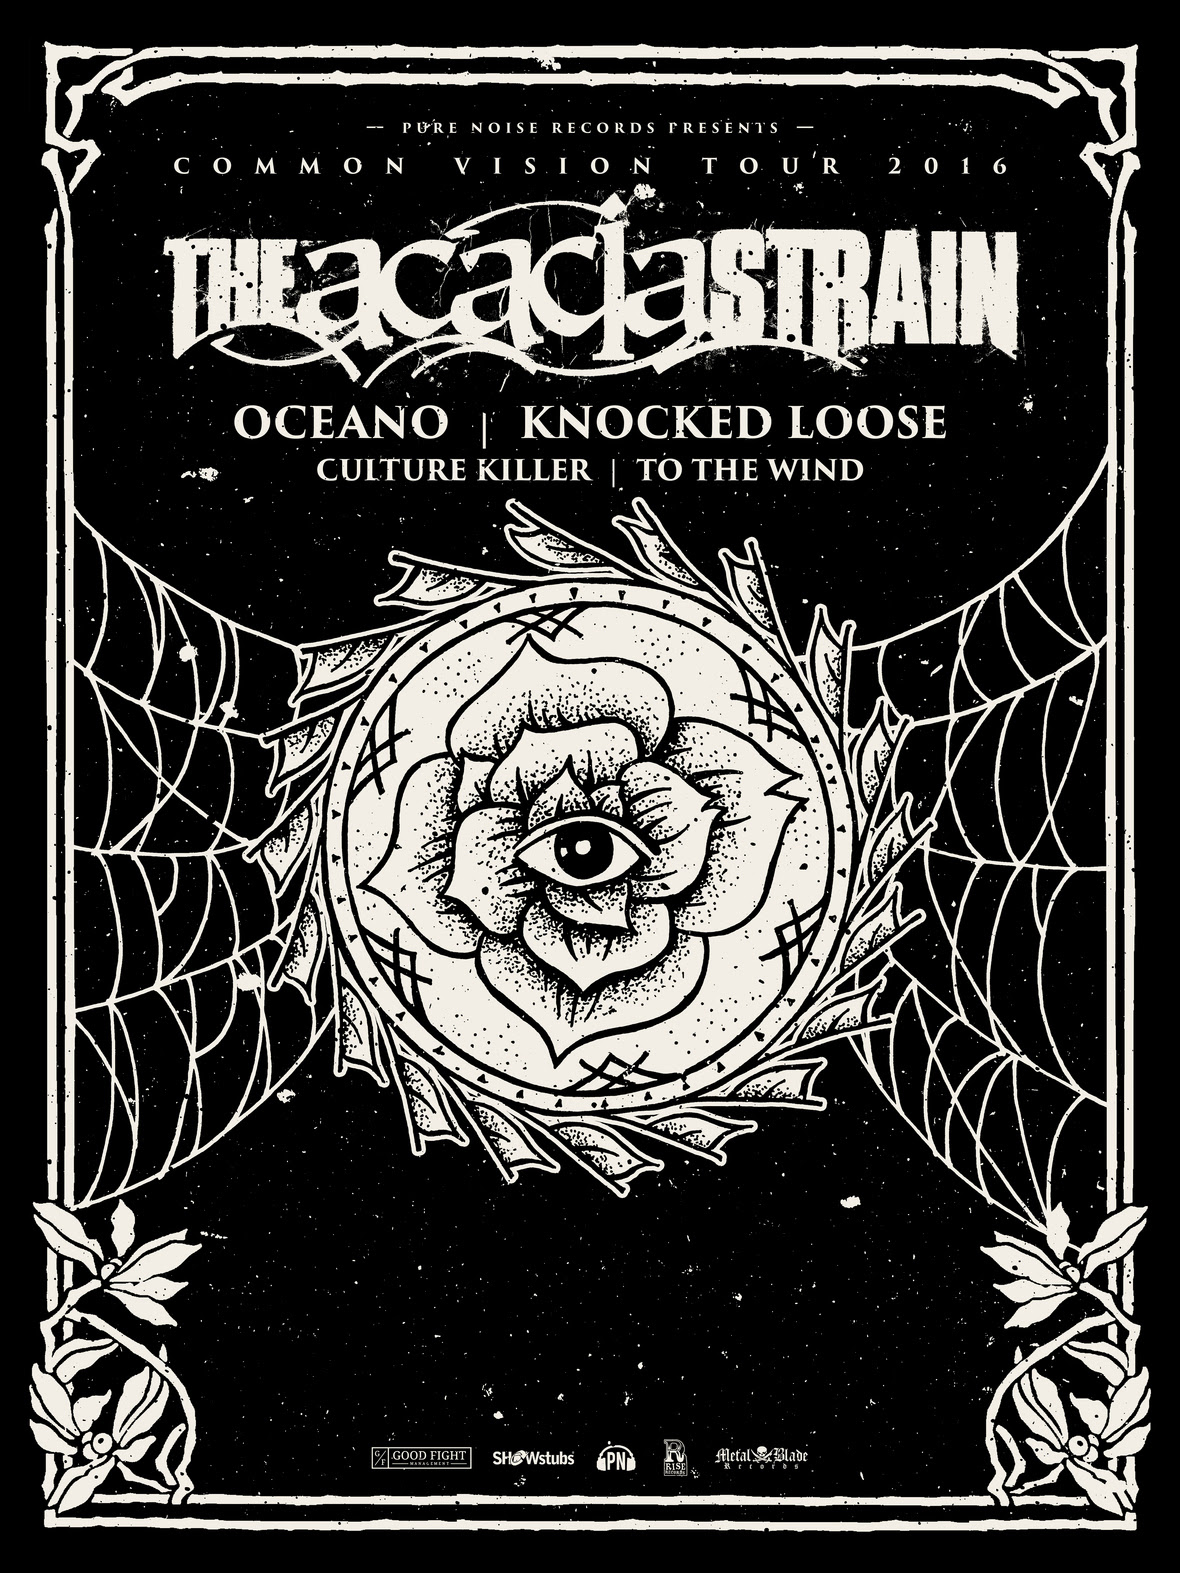 the acacia strain the common vision tour